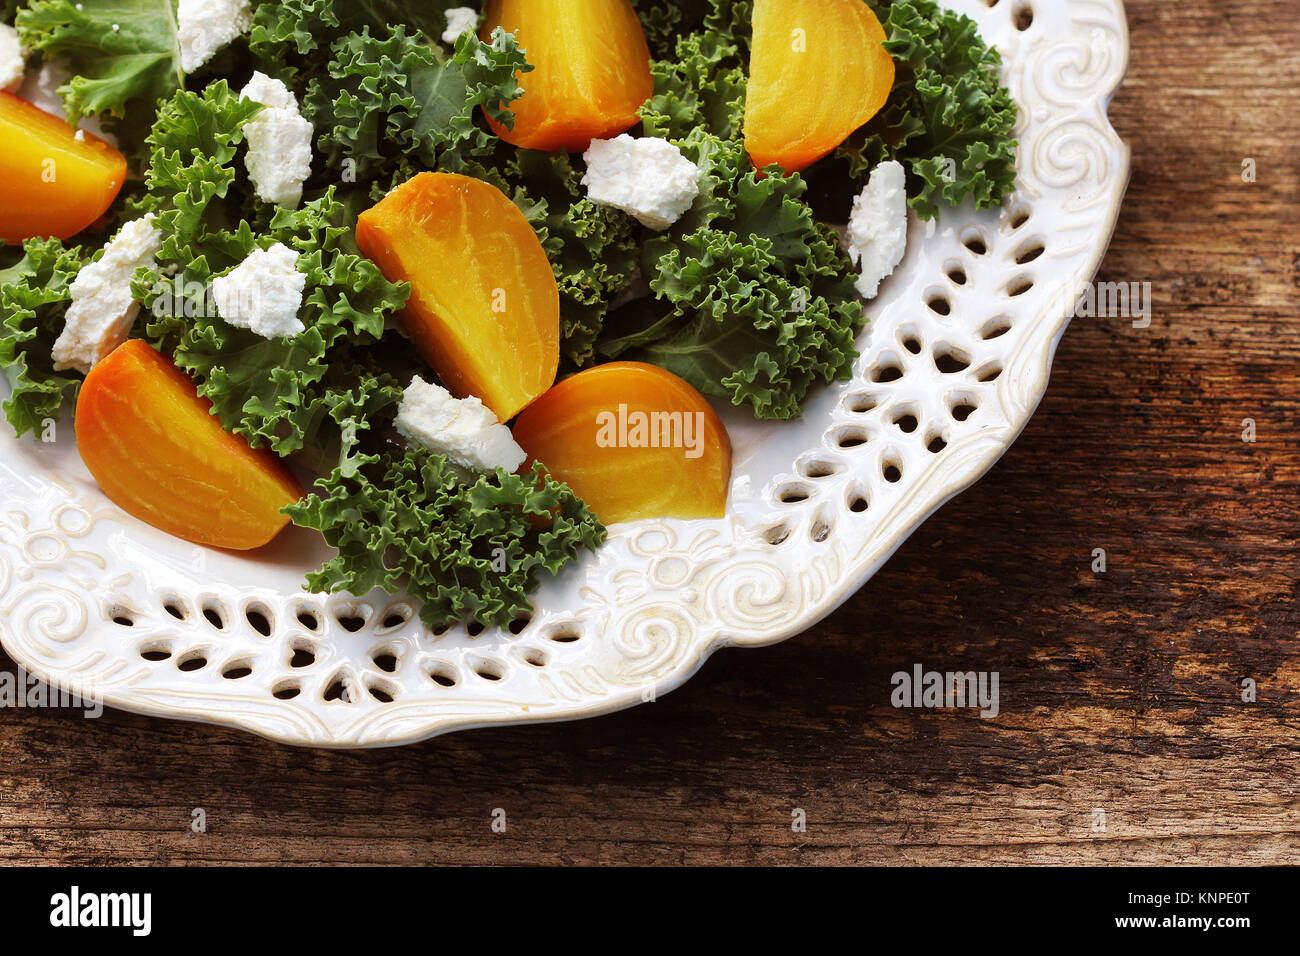 Golden beet salad with fresh kale lettuce, feta cheese on wooden background - Stock Image